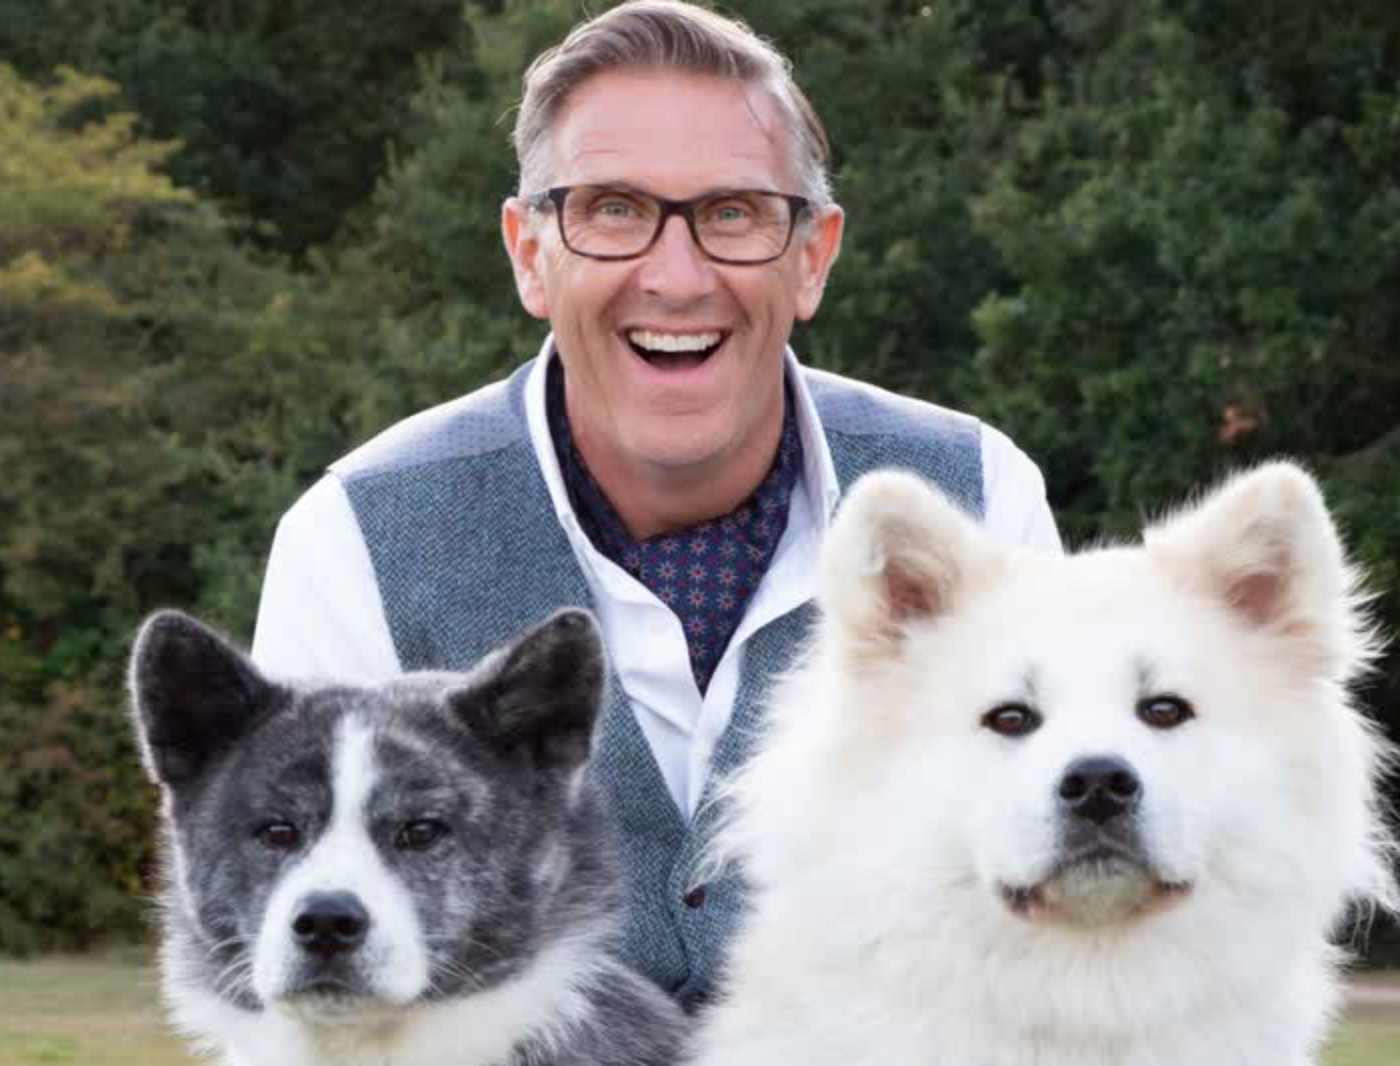 Channel 5 is looking for more of Manchester's naughtiest dogs to appear in new series, The Manc